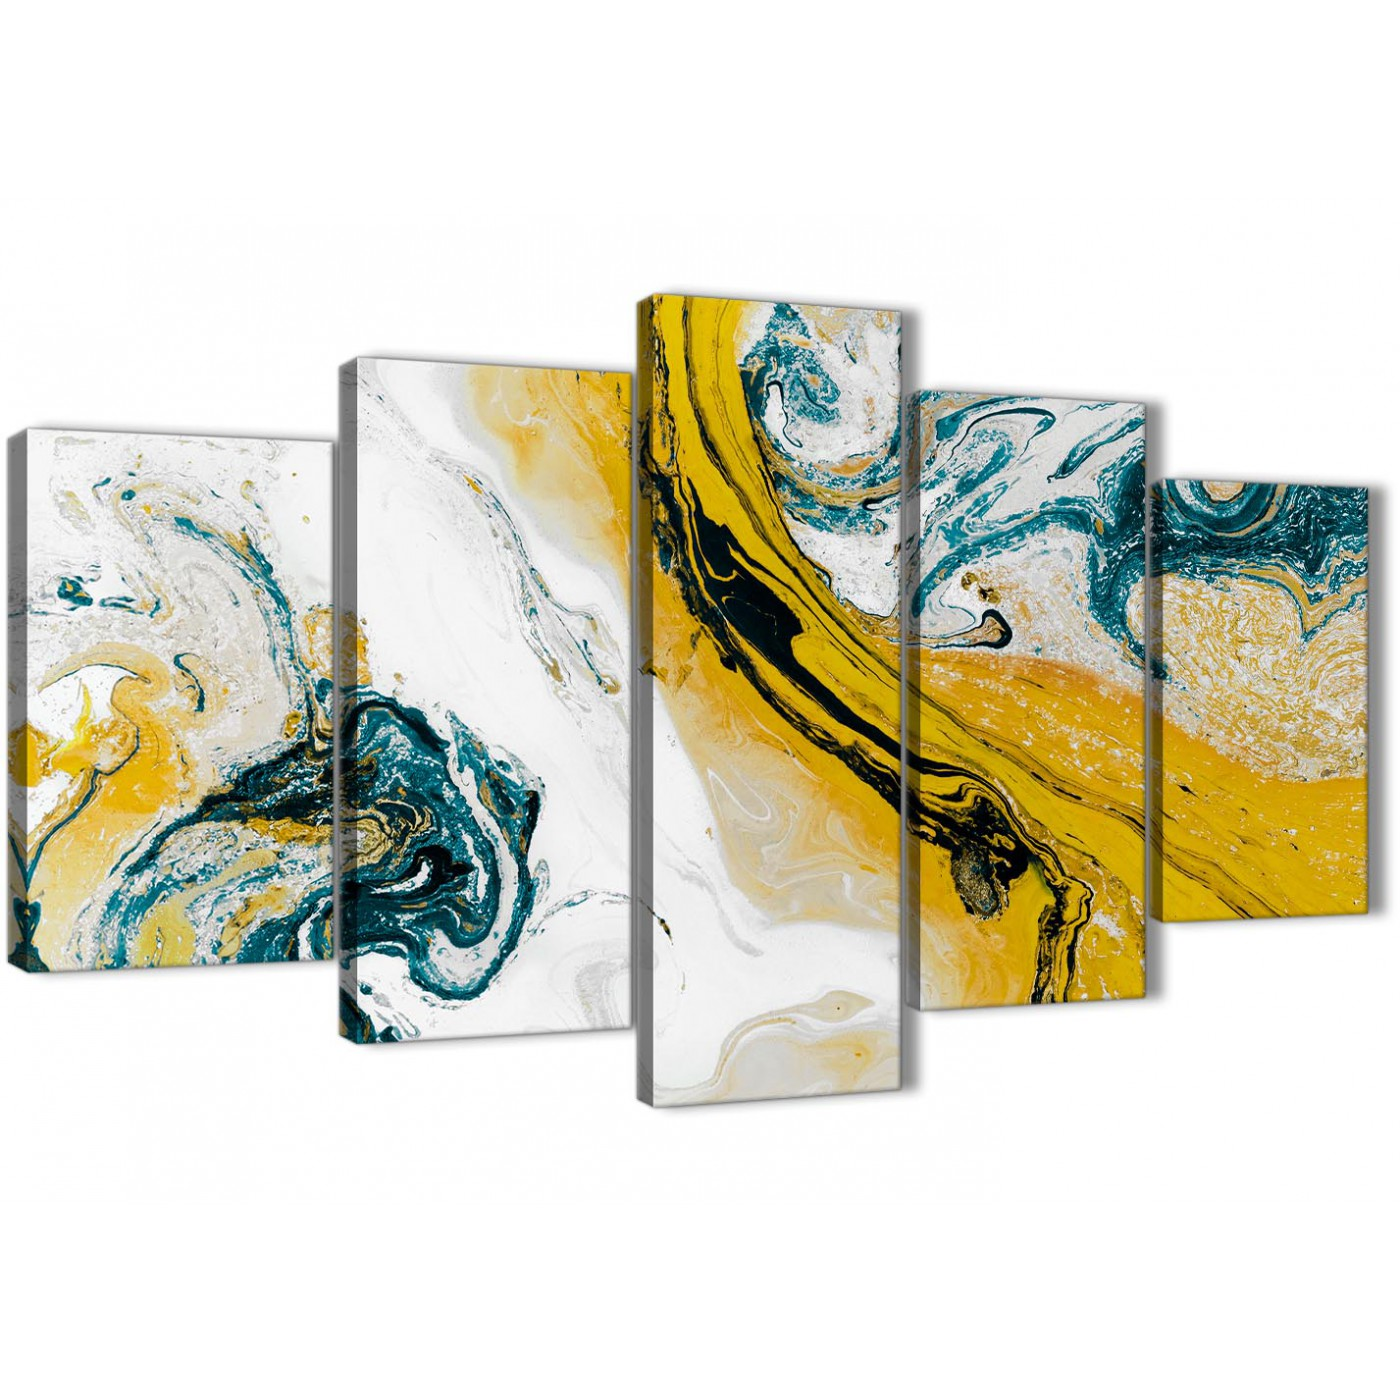 Bedroom Canvas Wall Art Uk: Mustard Yellow And Teal Swirl Bedroom Canvas Pictures